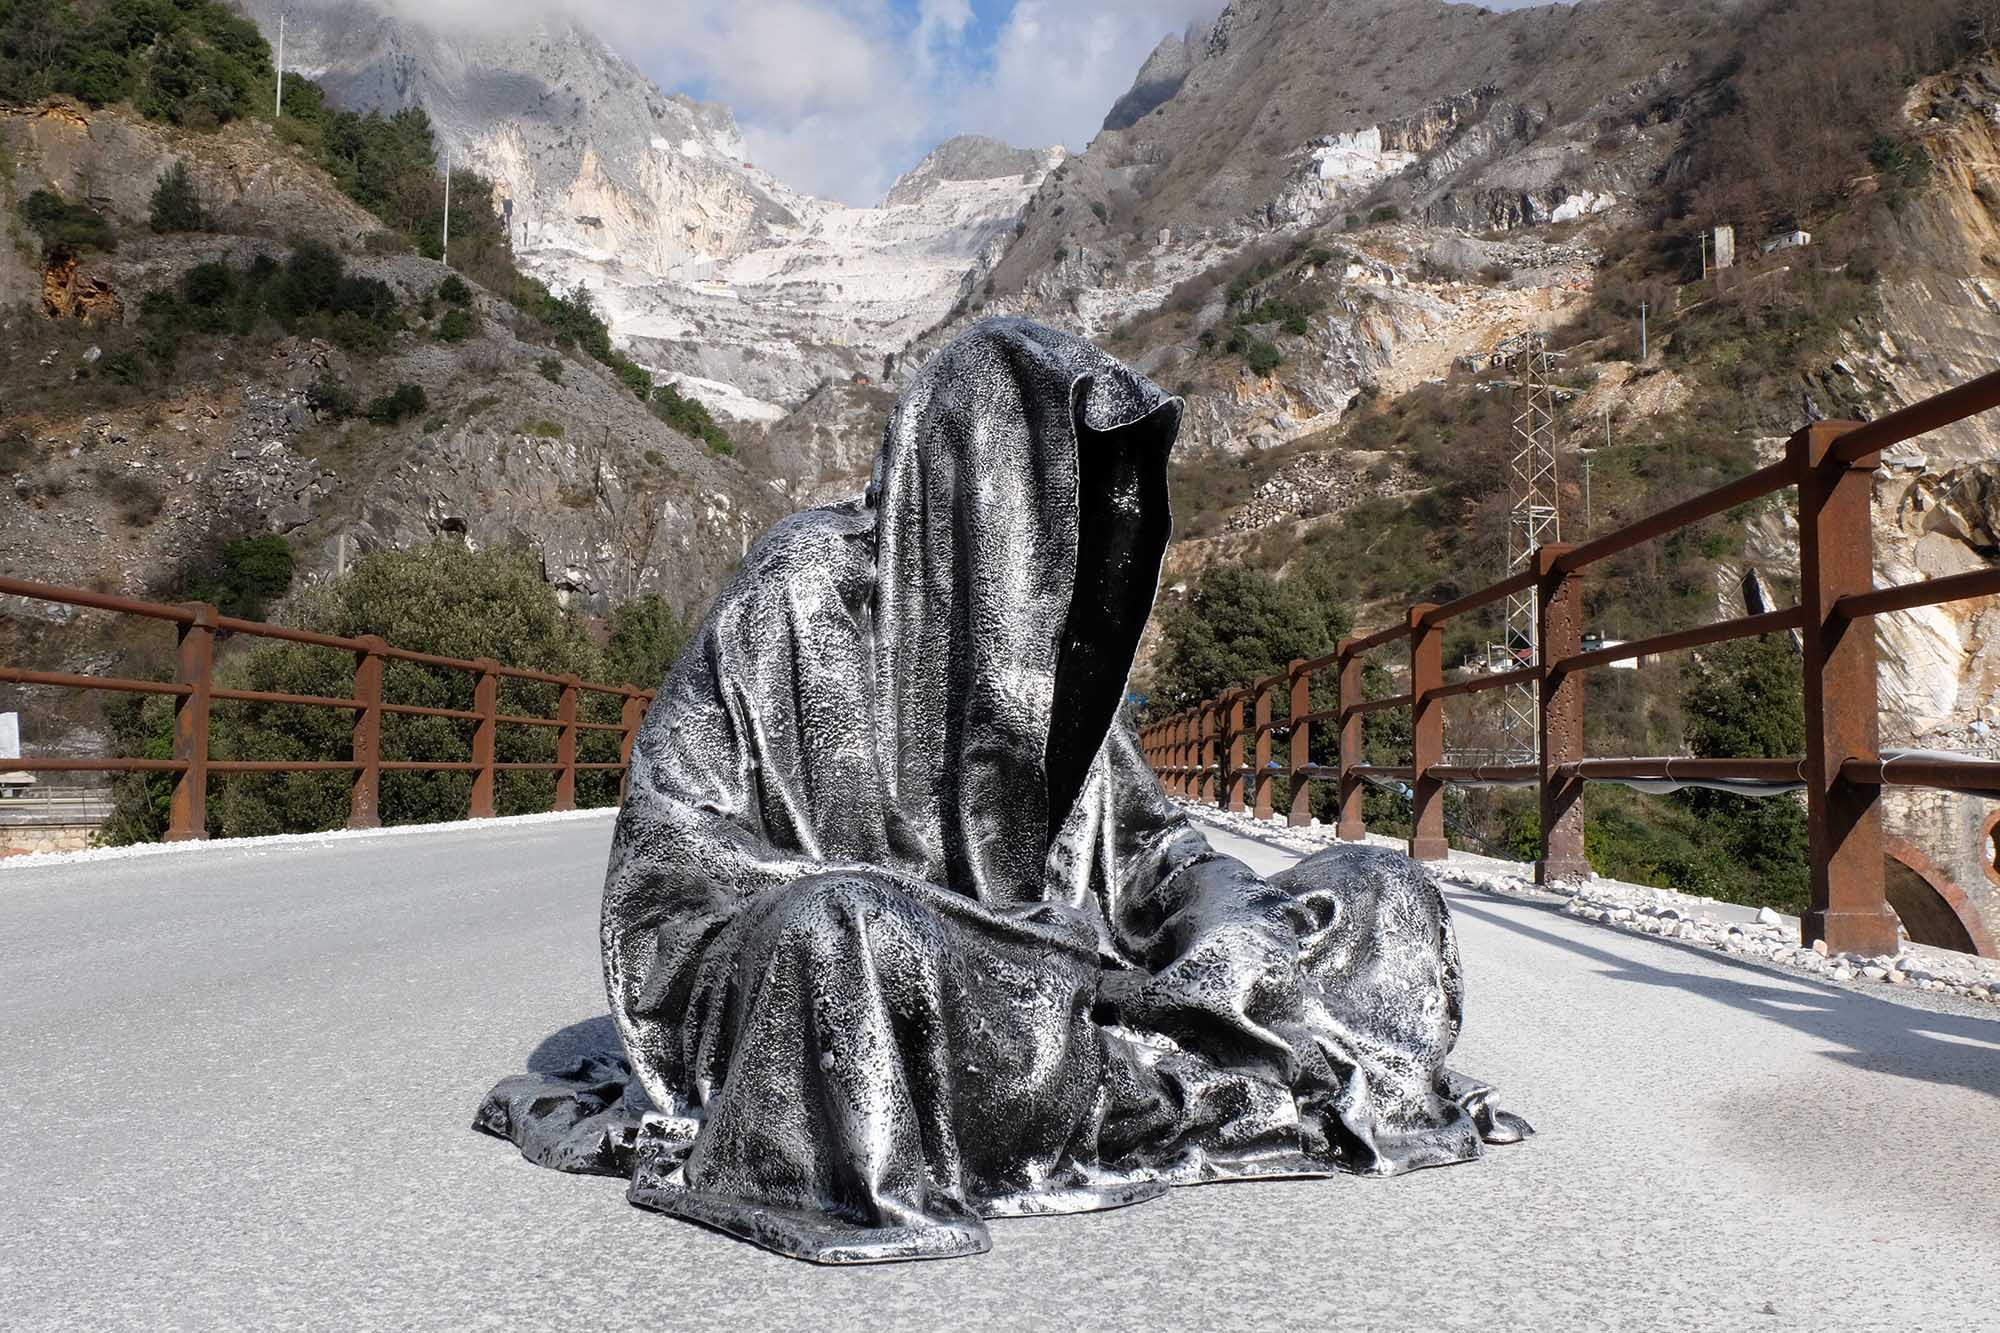 guardians of time manfred kili kielnhofer modern sculpture contemporary fine art design arts statue faceless religion stone marble carrara 1299